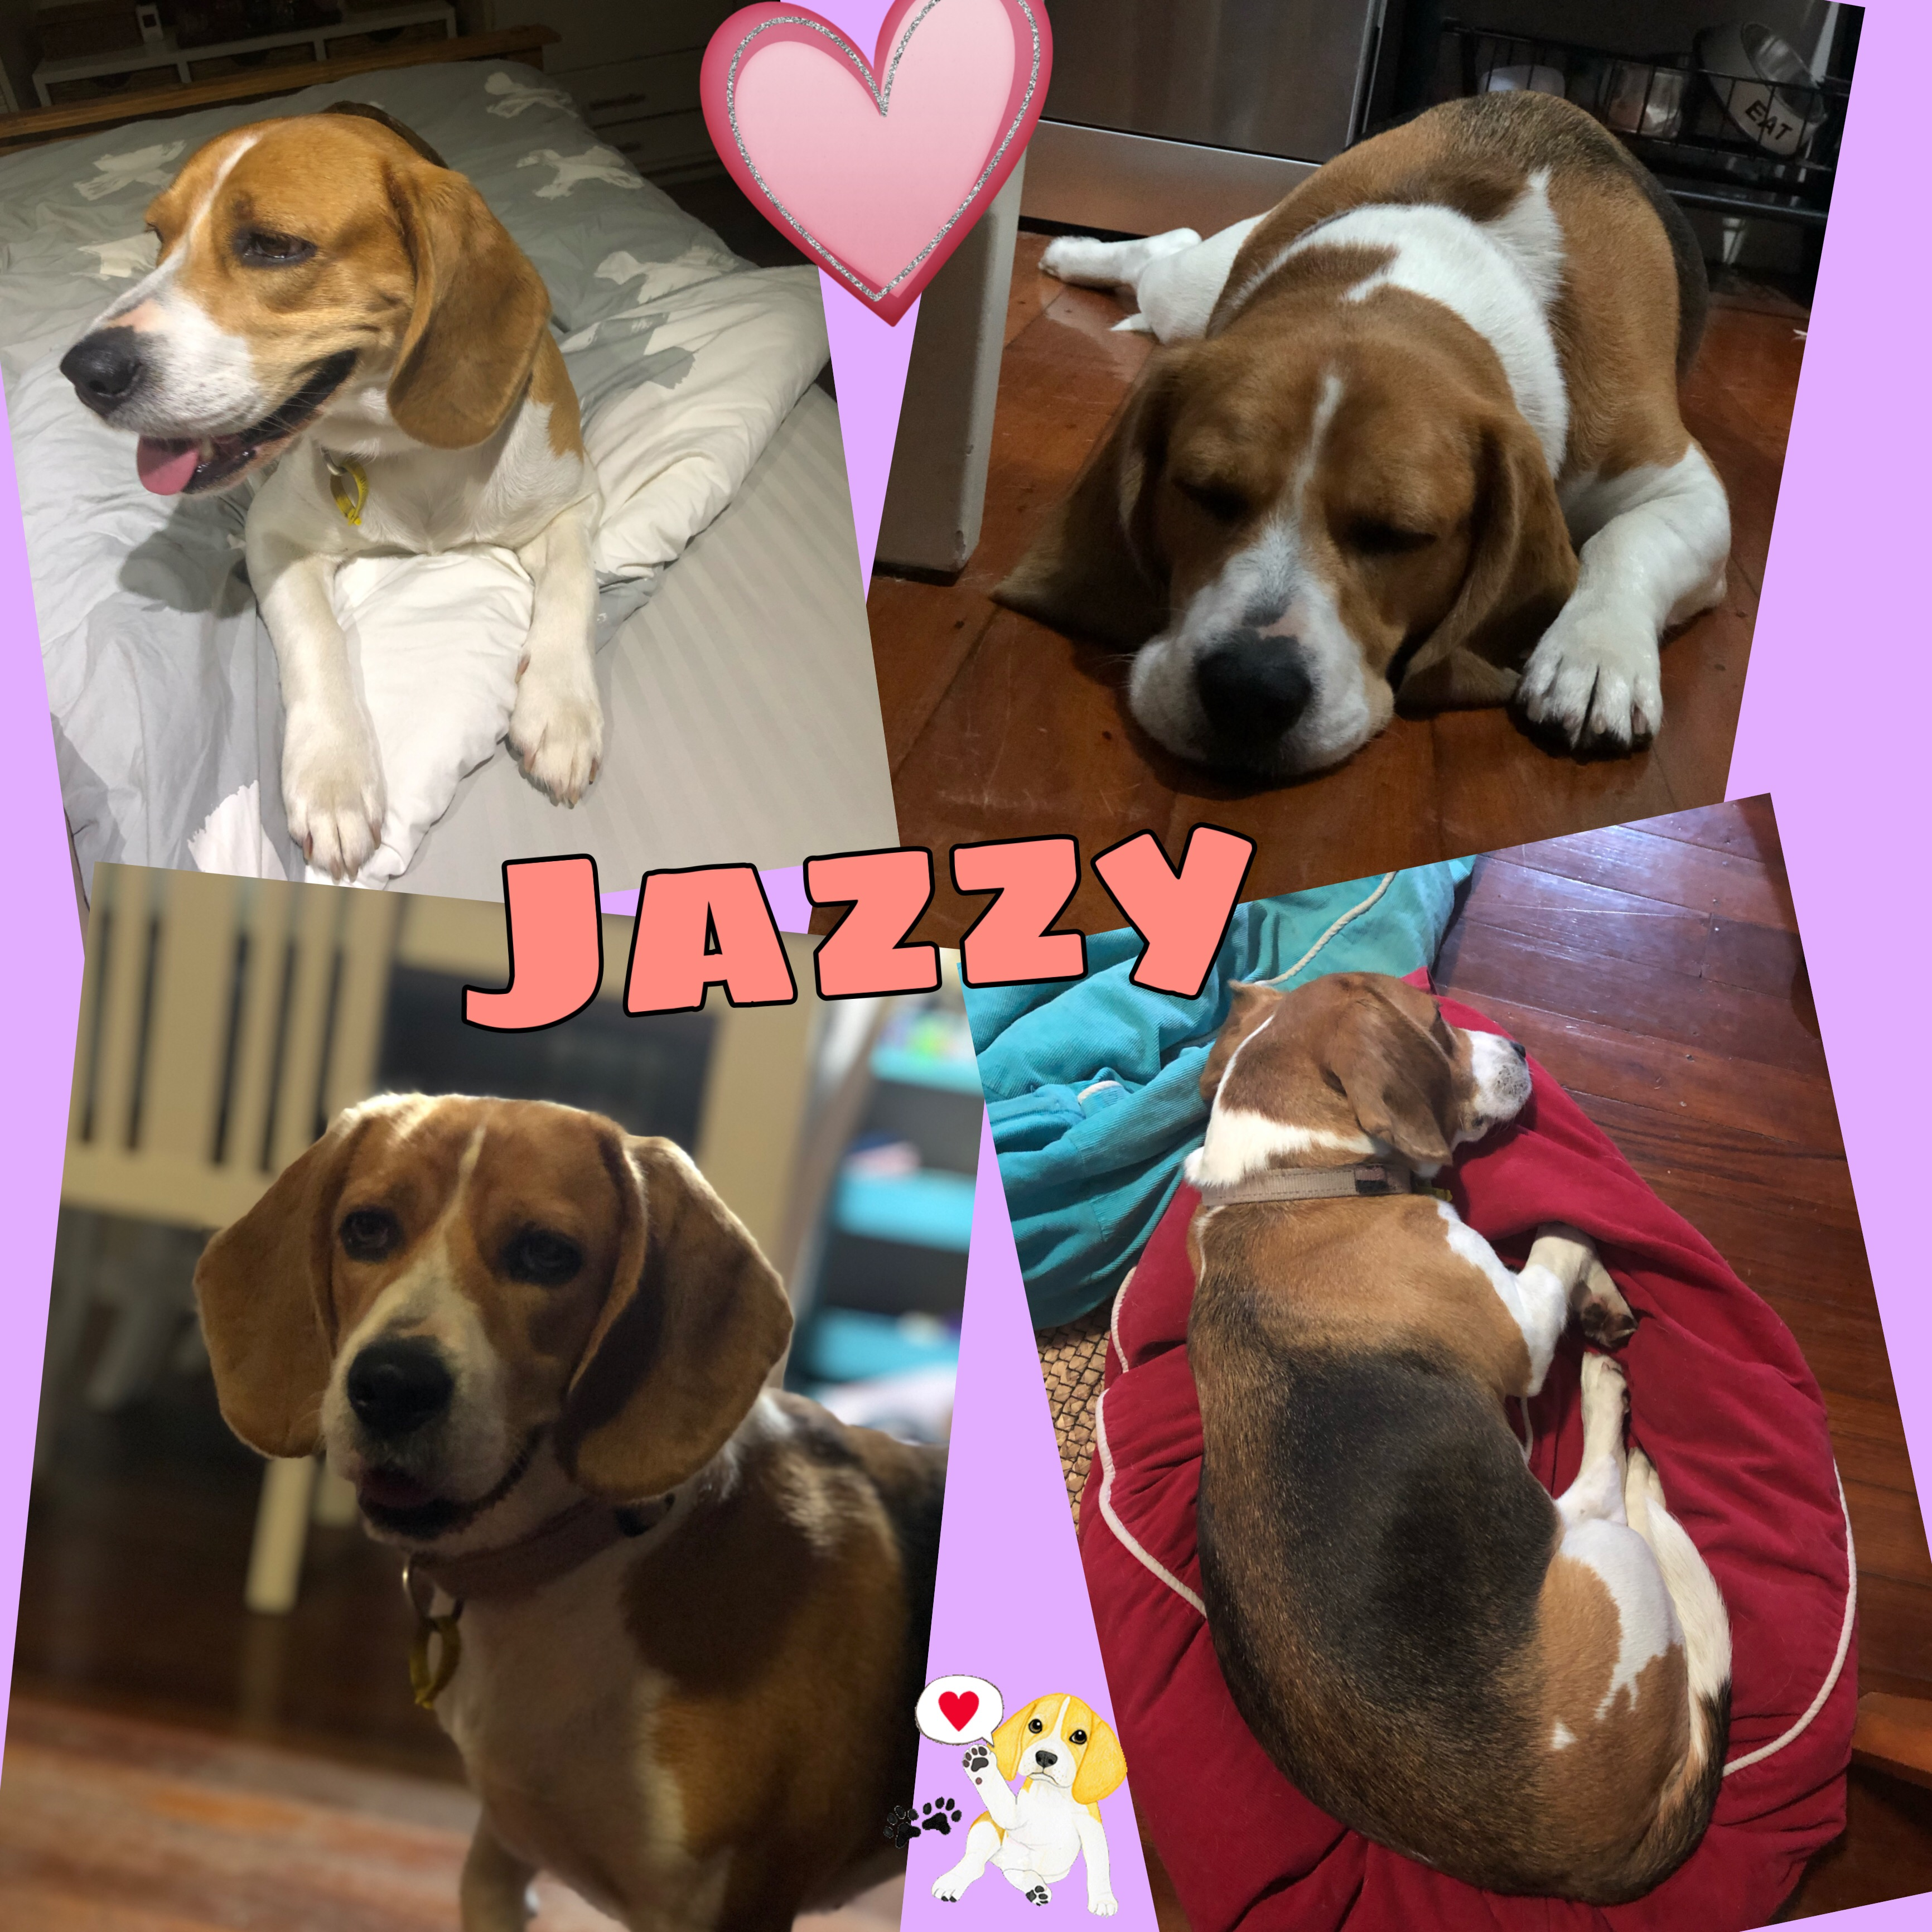 Jazzy is adopted